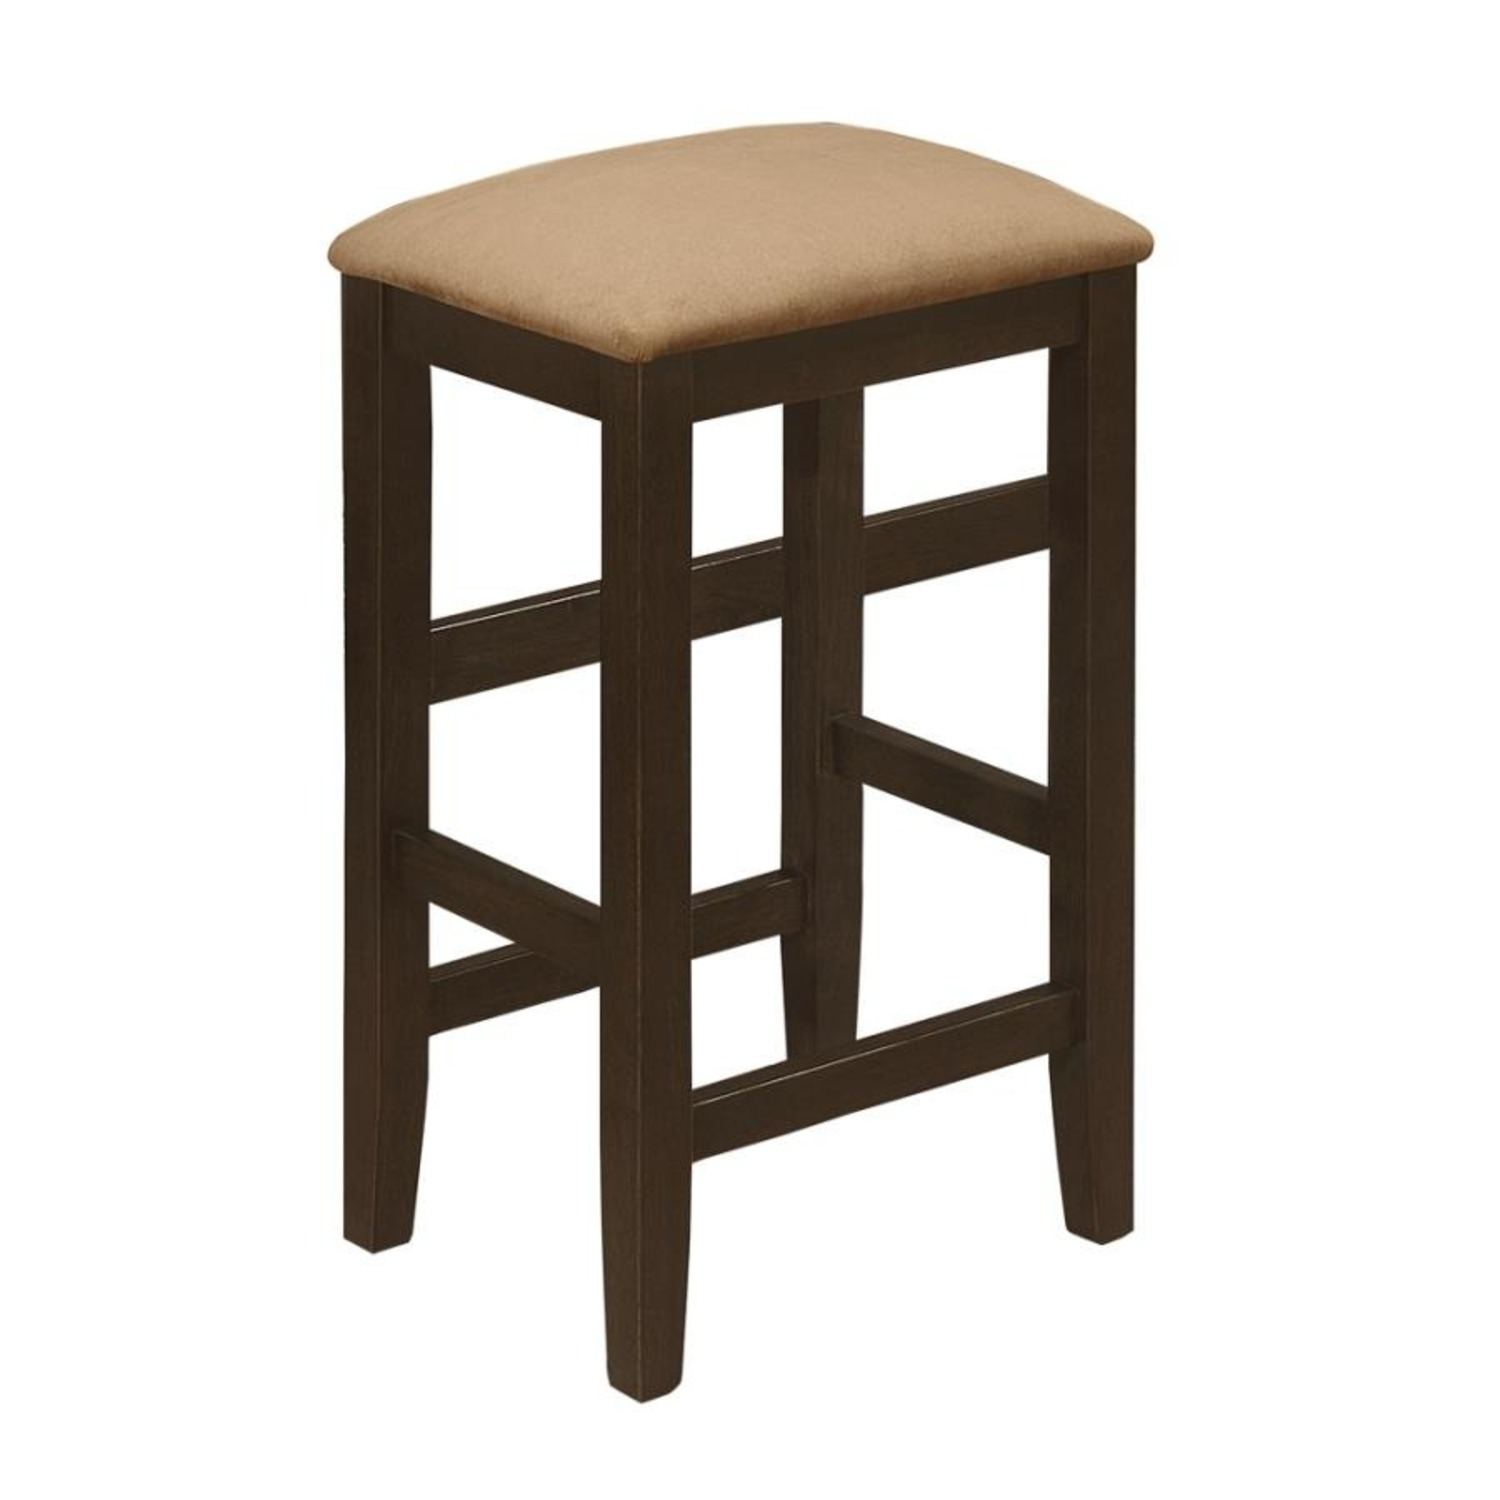 Counter Height Stool In Cappuccino Fiber Peat - image-0